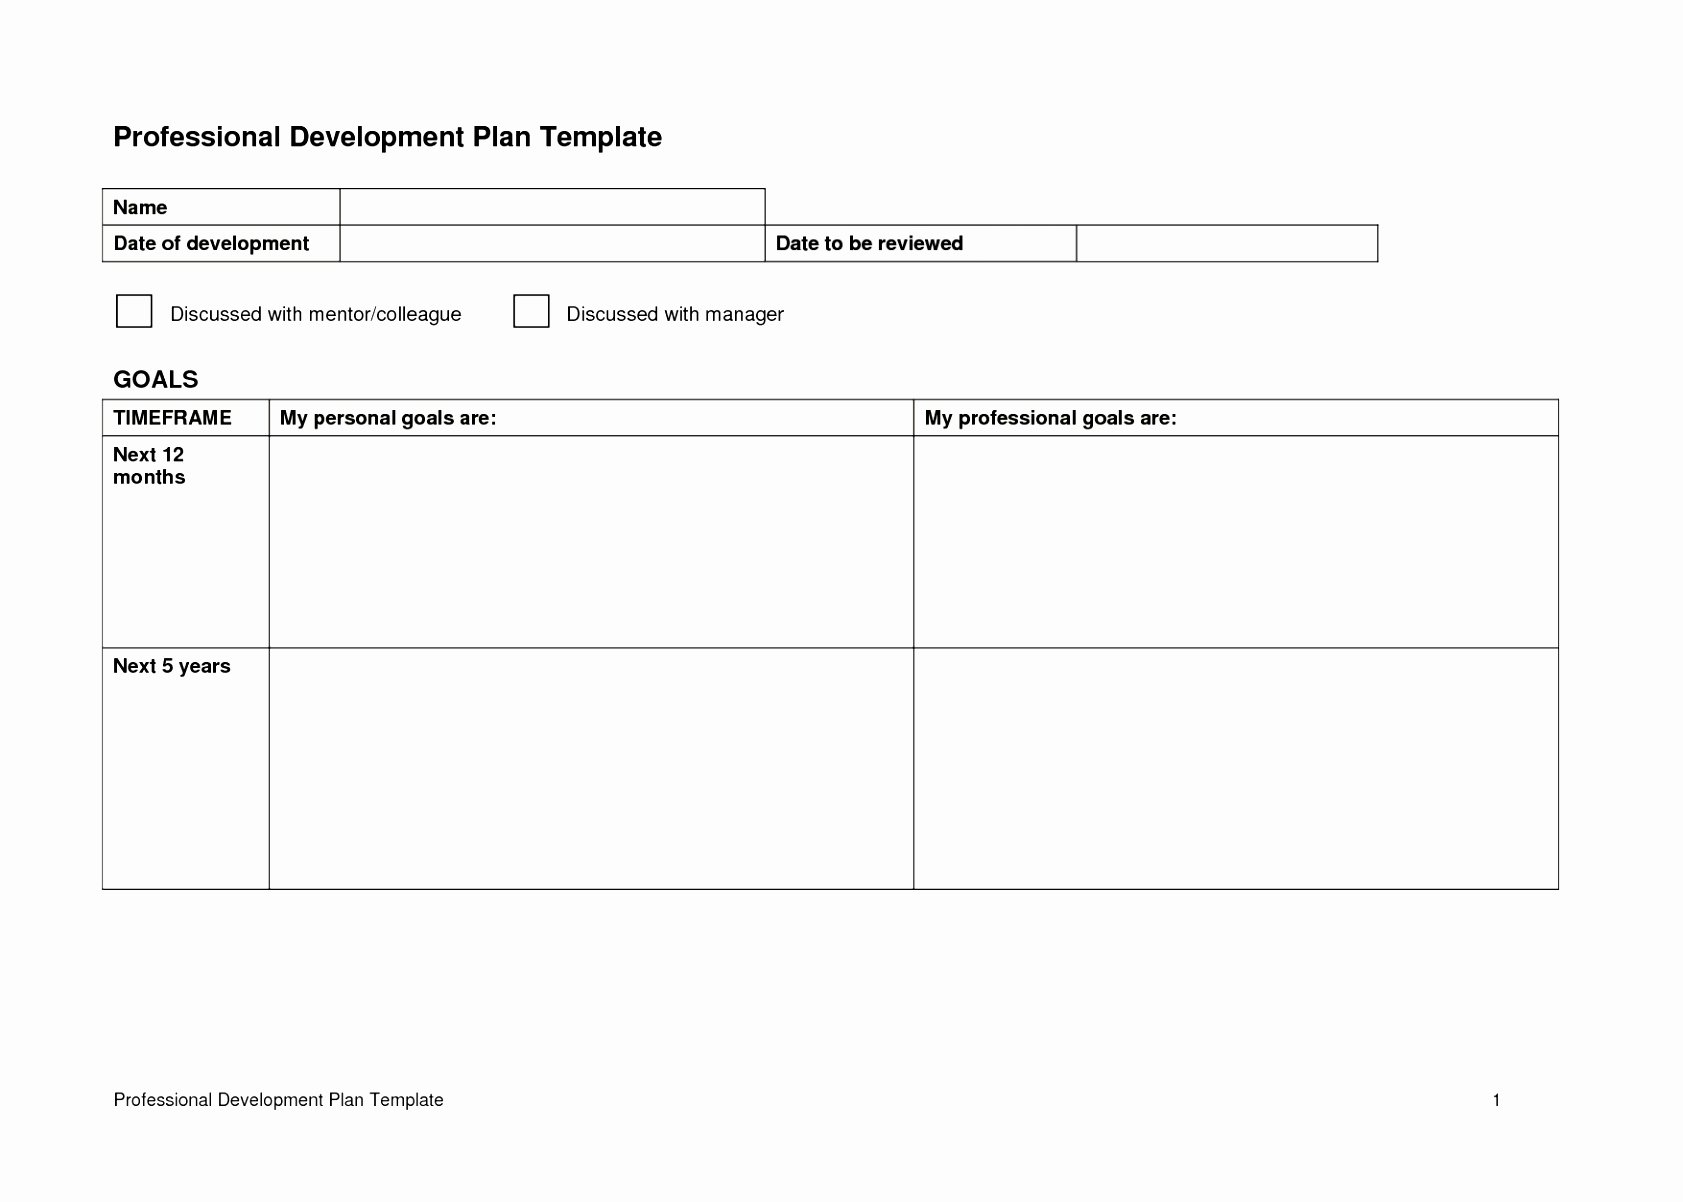 Professional Growth Plan Template Fresh Recent Articles Re Cpd Simple Personal and Professional